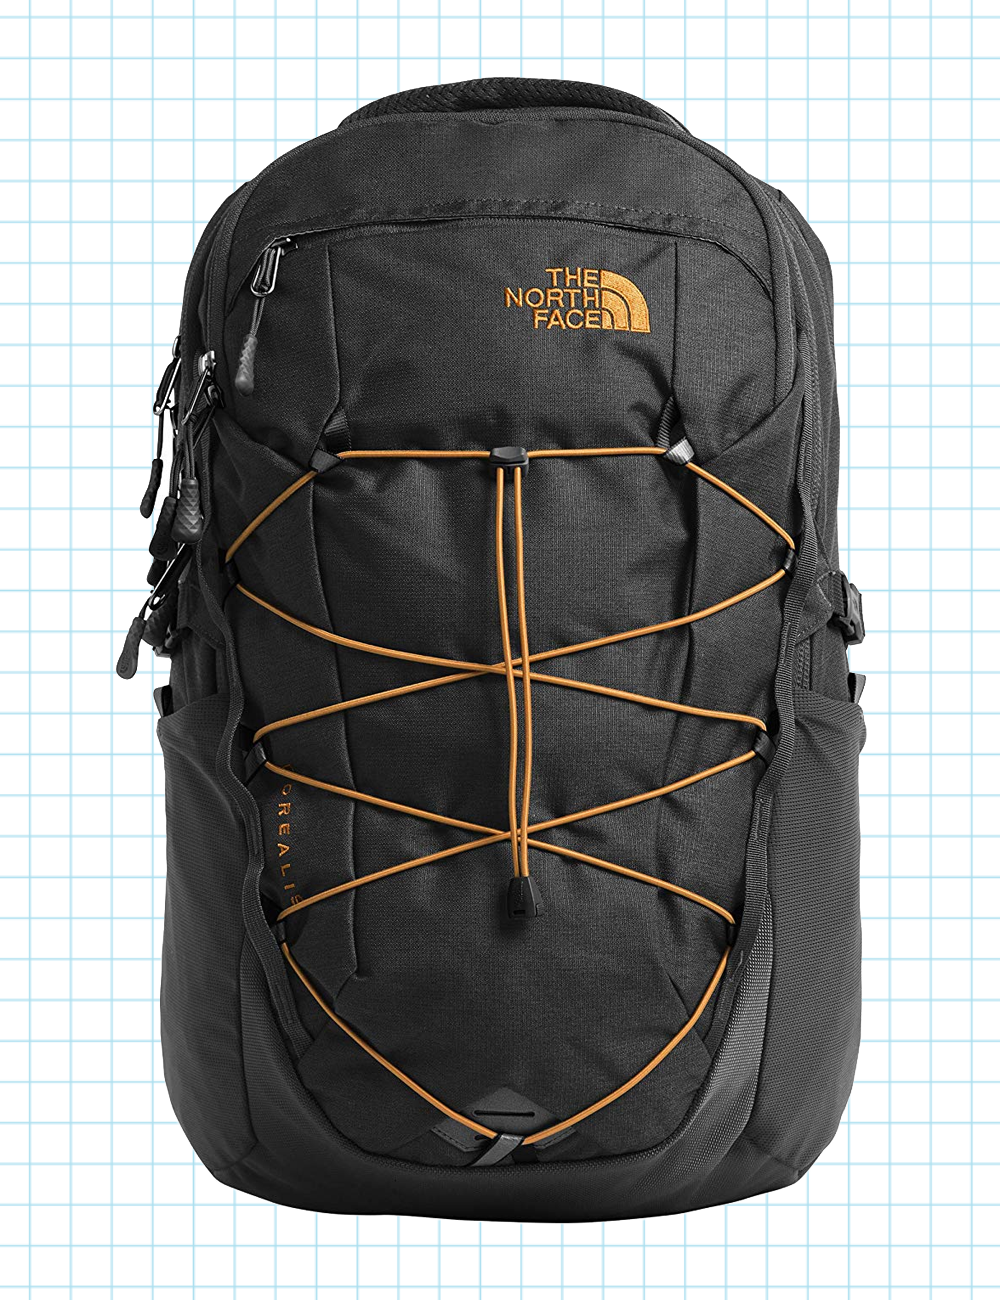 9d869f0d7 The North Face Borealis Backpack